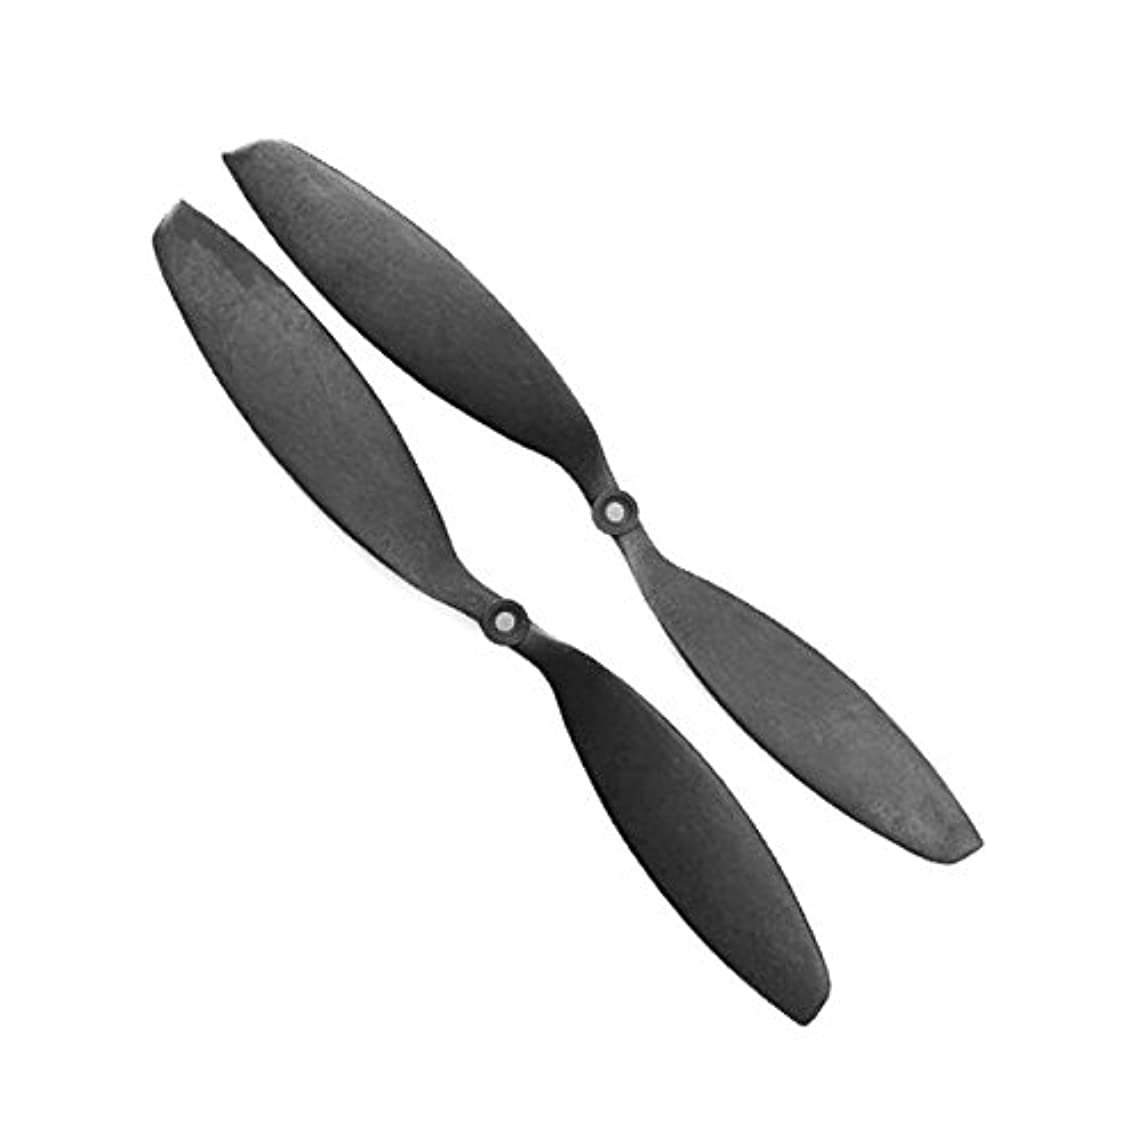 Genuine Gemfan 1347 (13x4.7) Propellers by RAYCorp. 2 Pieces(1CW, 1CCW) Black - Carbon Nylon 13-inch Quadcopters & Mutlirotors Props + RAYCorp Battery Strap